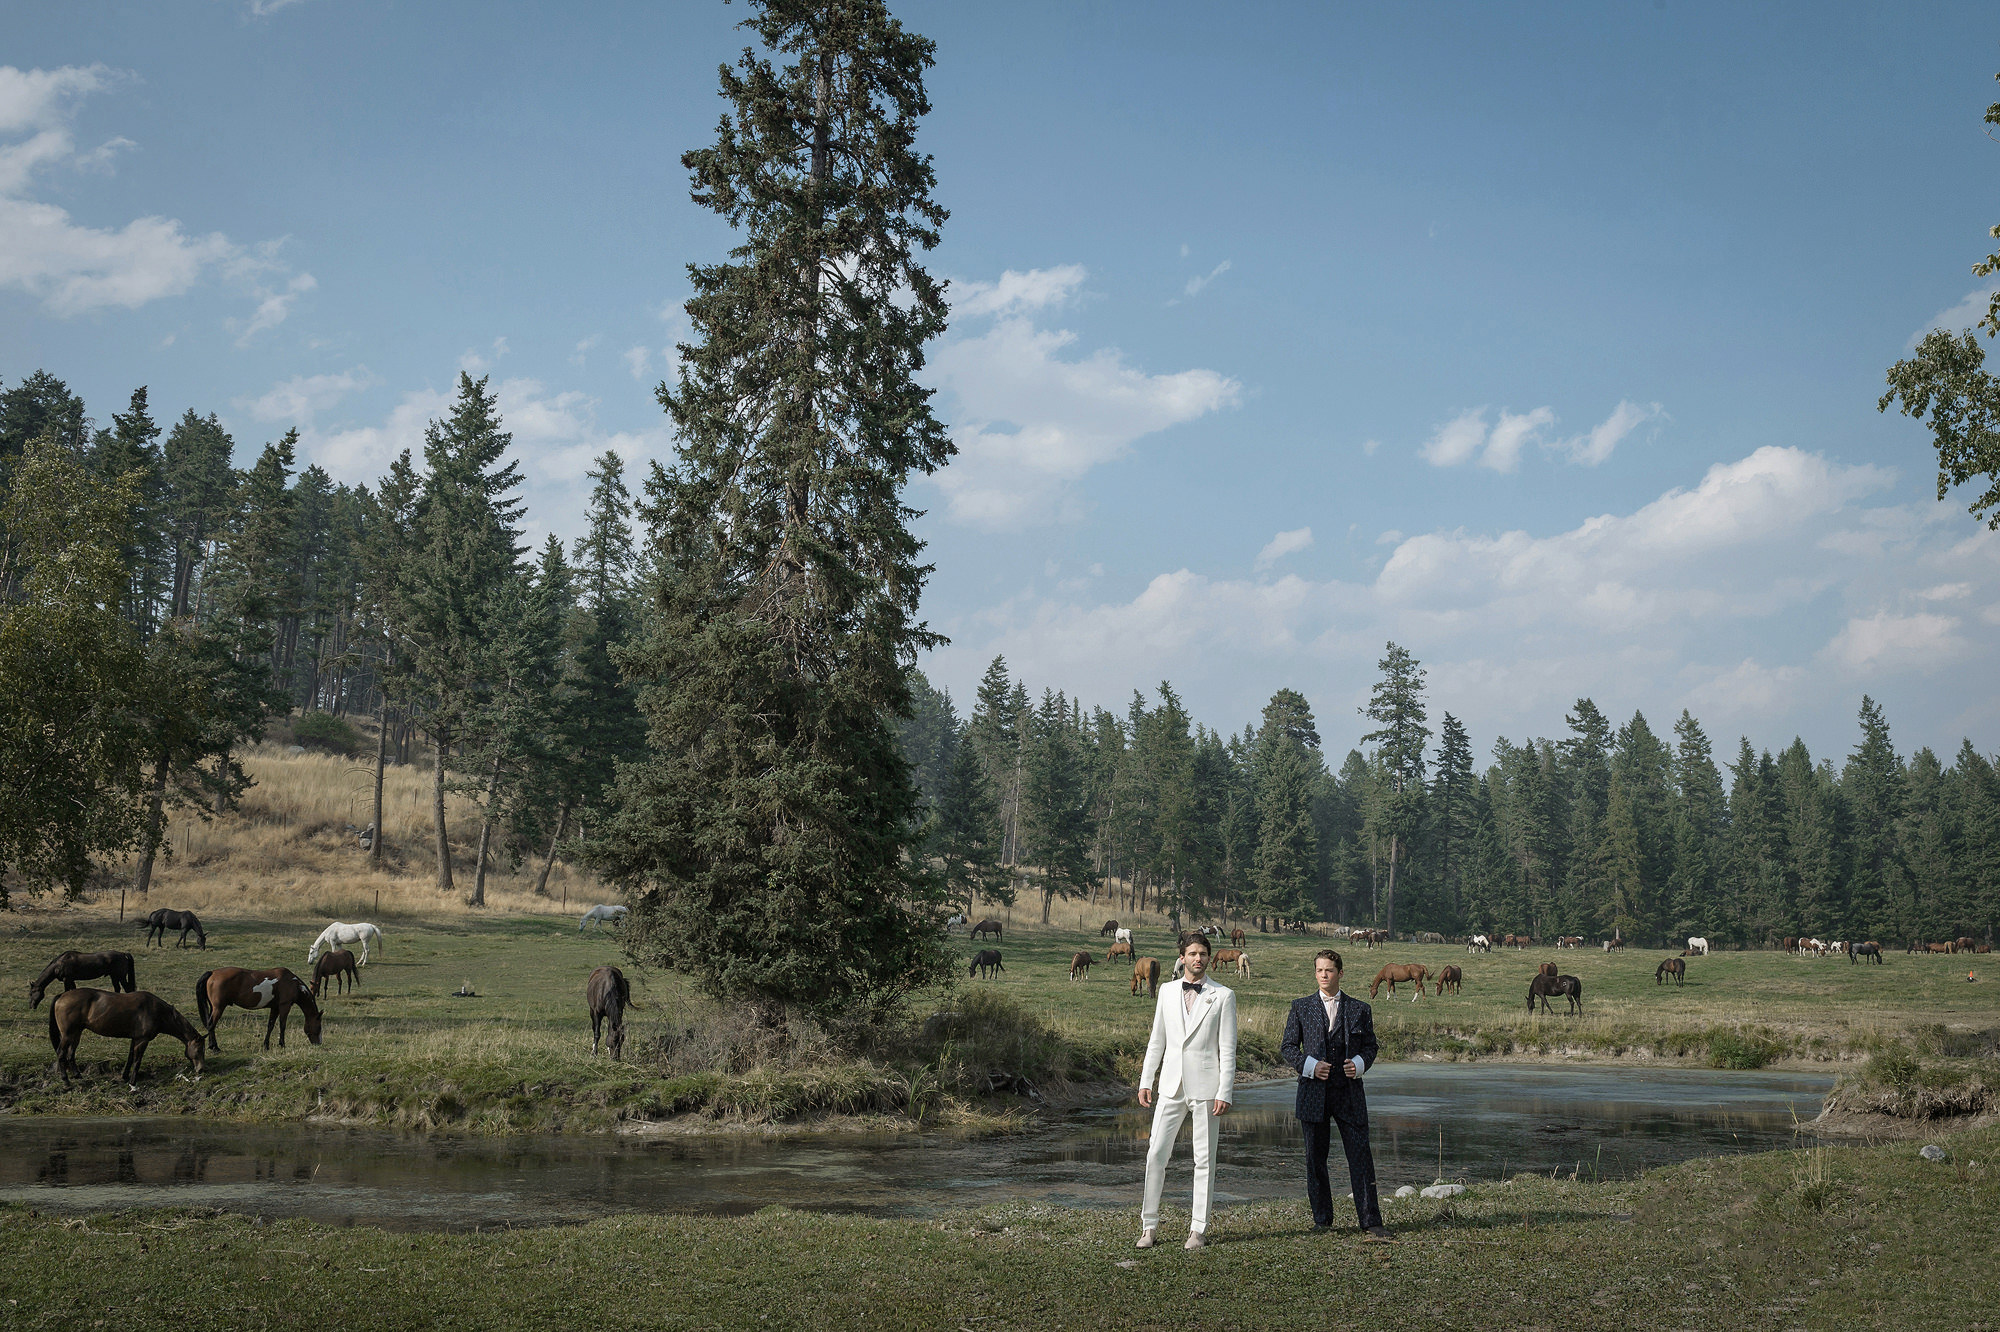 Groom in white tux with best man in field of horses  - photo by 37 Frames